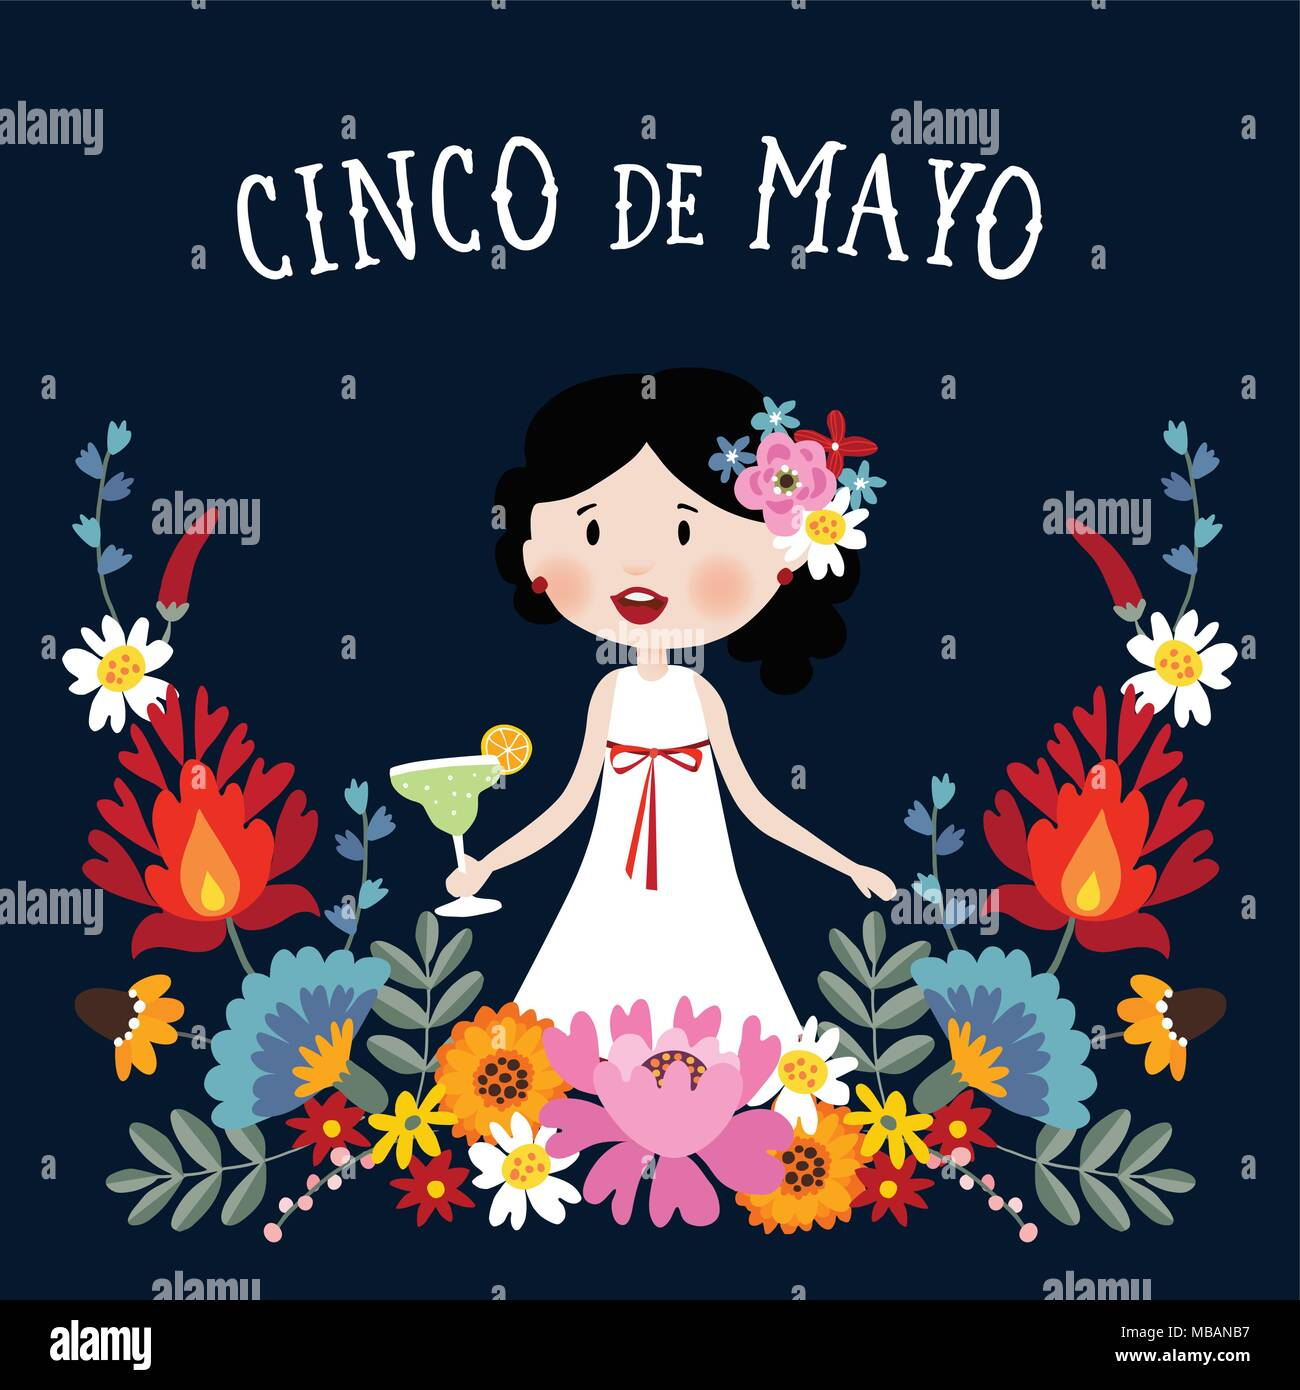 Cinco De Mayo Greeting Card Invitation With Mexican Woman Drinking